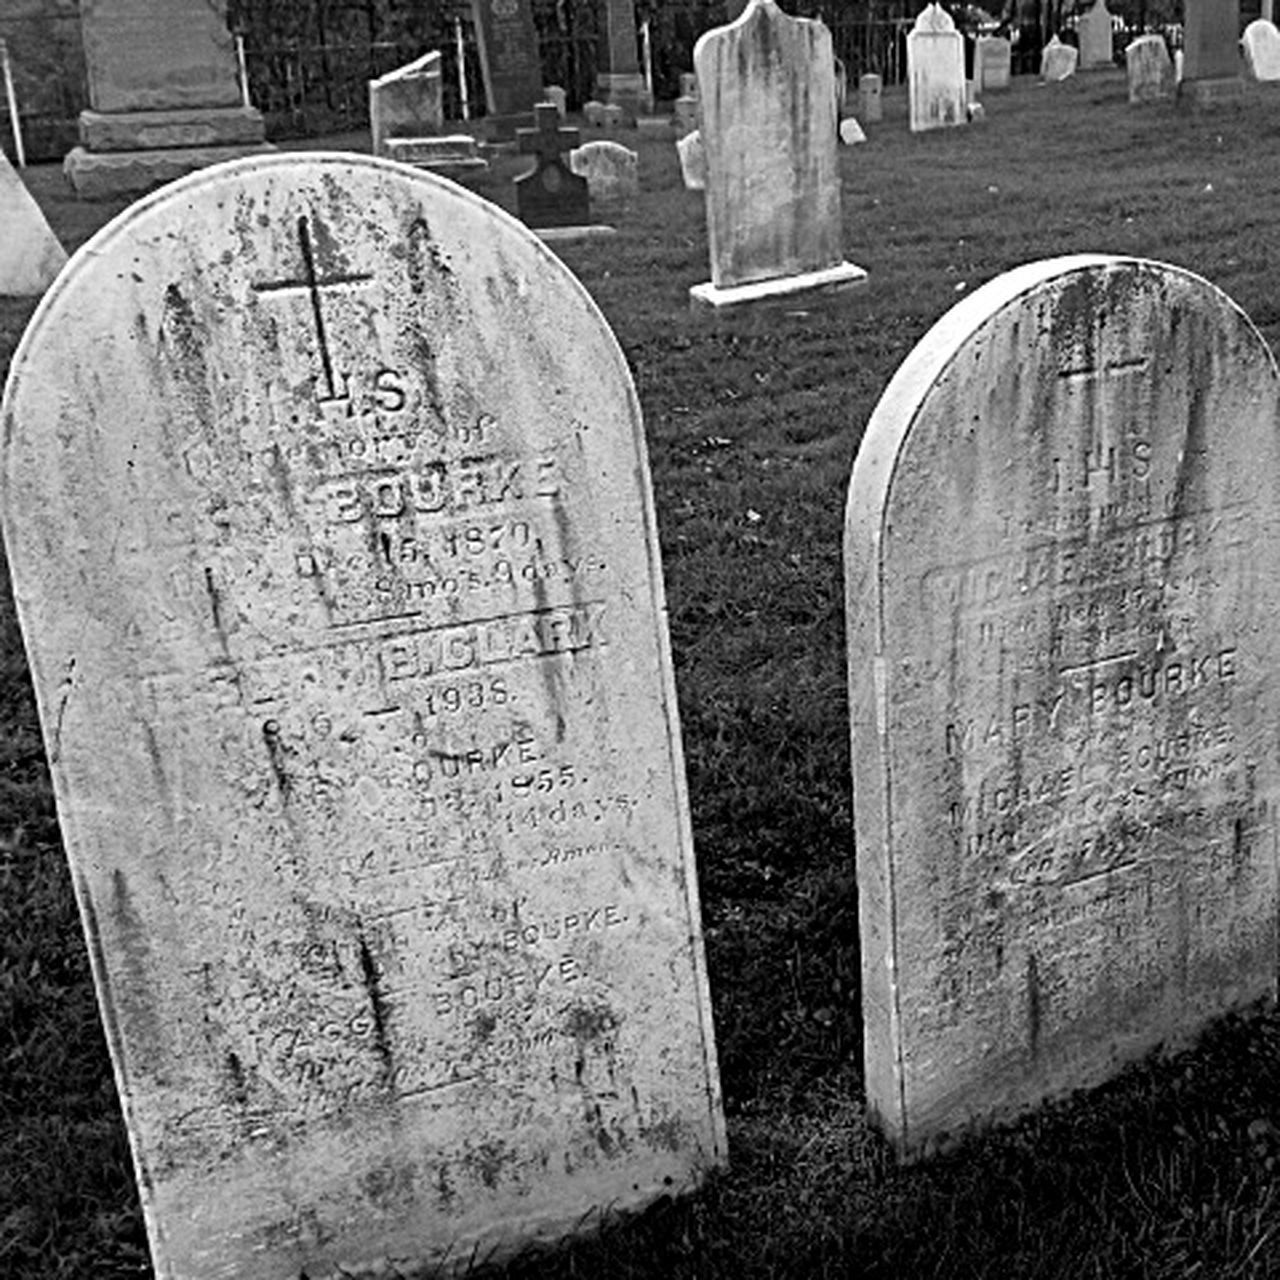 tombstone, cemetery, memorial, text, gravestone, grave, graveyard, day, communication, outdoors, no people, close-up